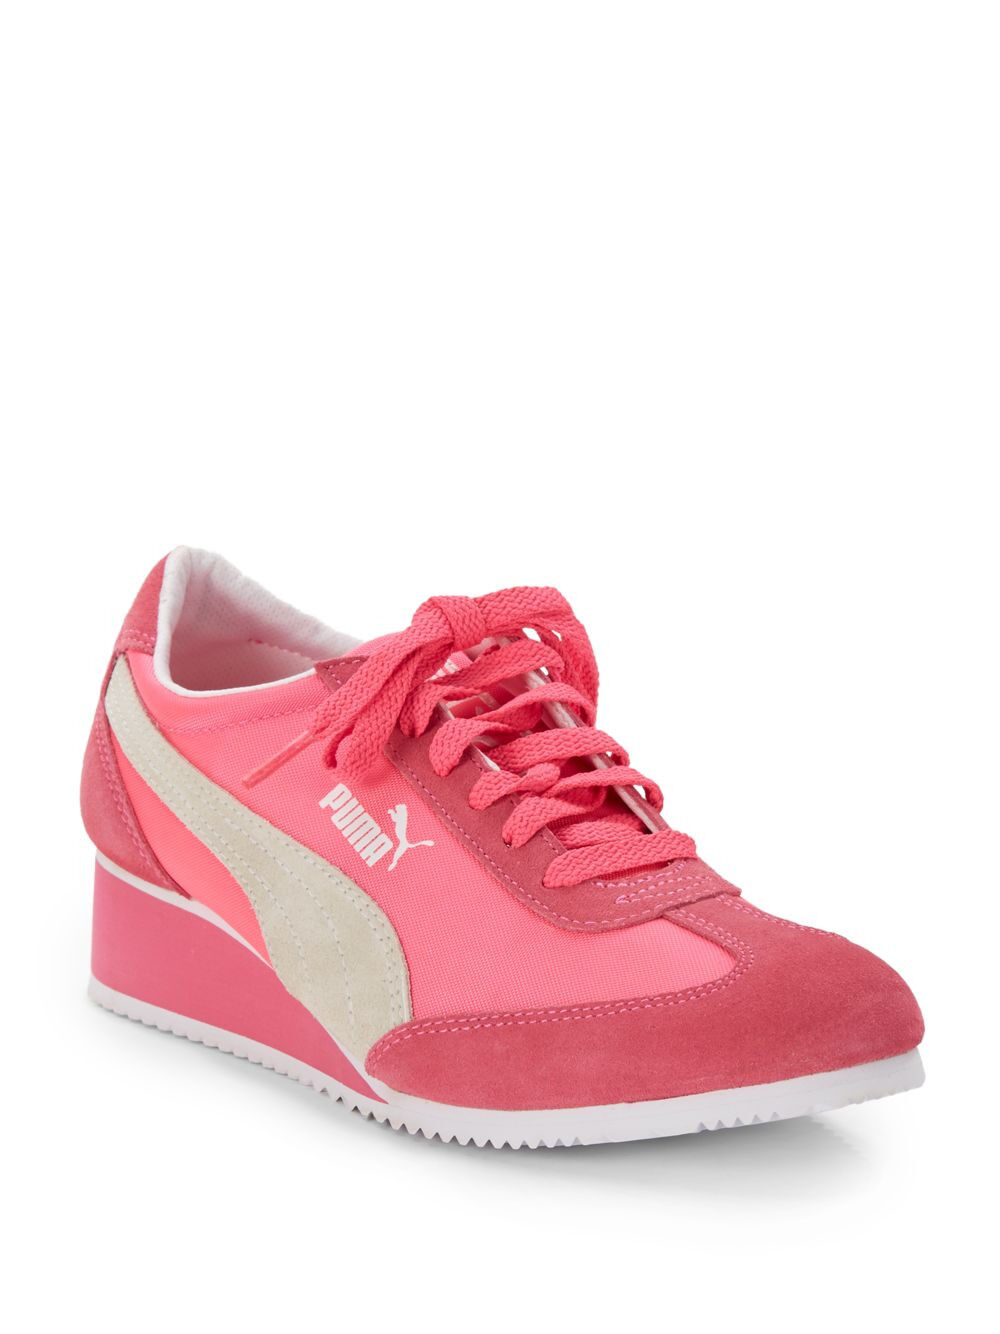 Puma Women's Caroline Wedge Fashion Sneaker Fluorescent Pink US 9.5 EUR 40.5